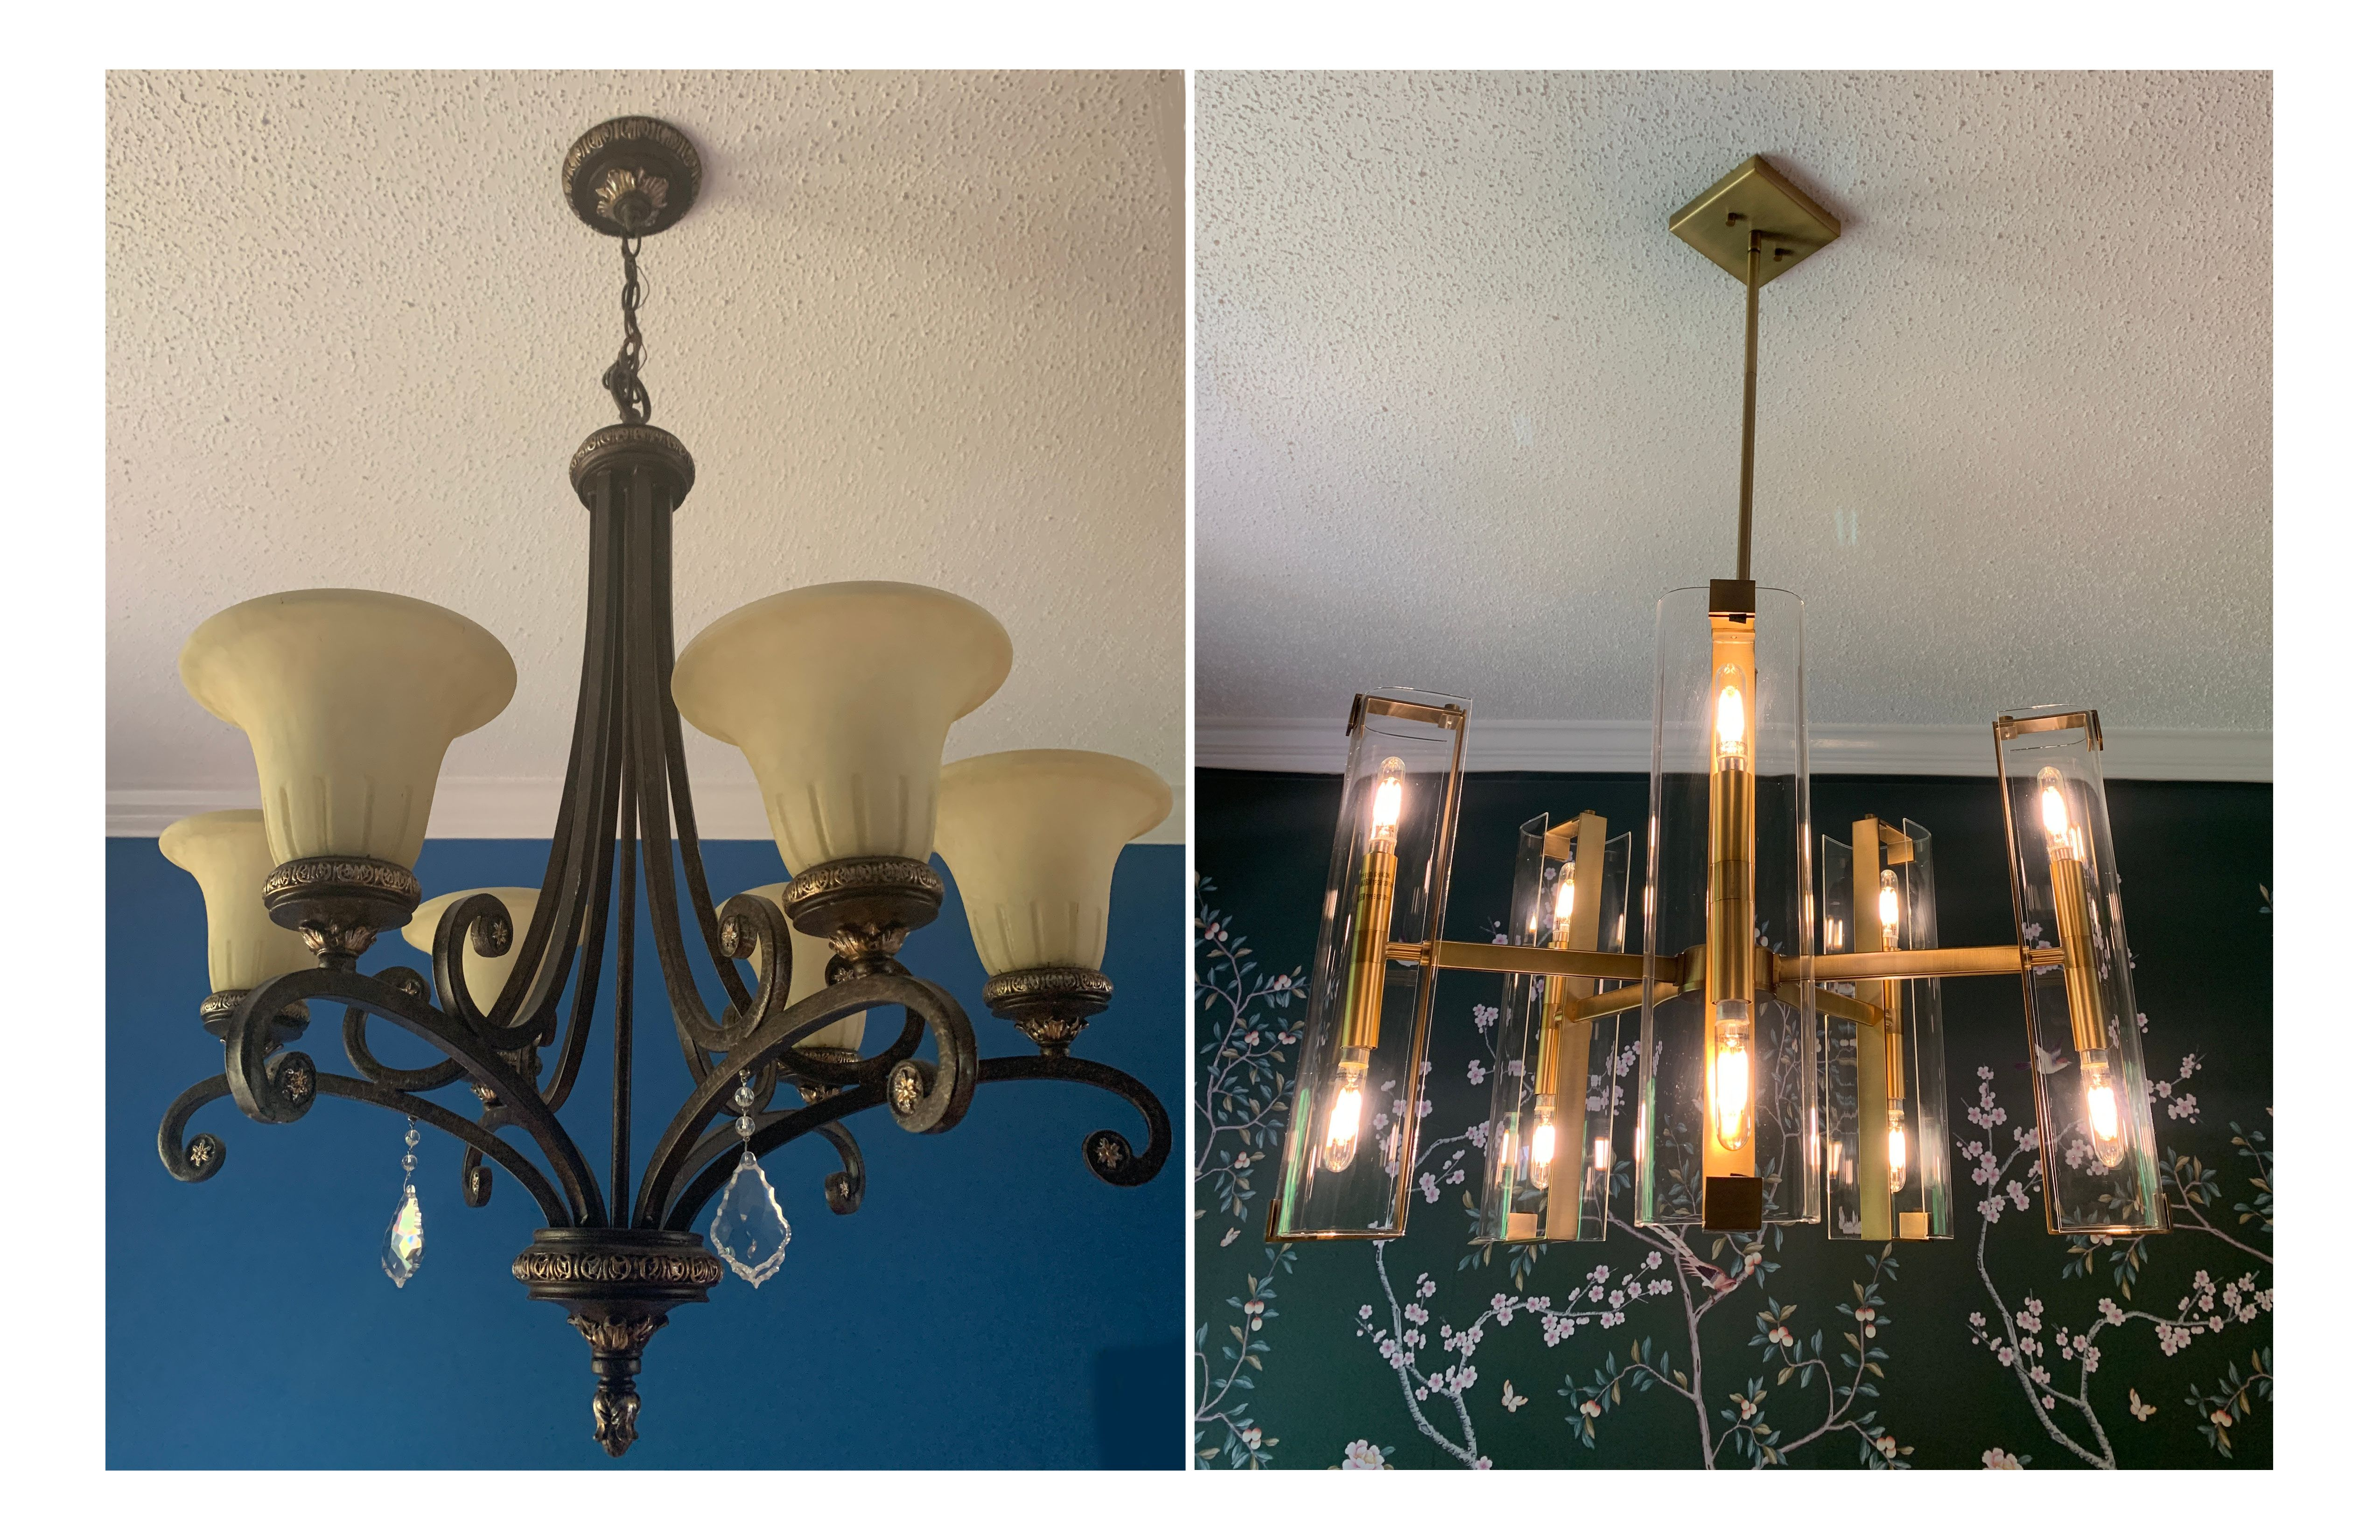 Light Fixture Without Hiring An Electrician, How Much Does It Cost To Replace A Chandelier